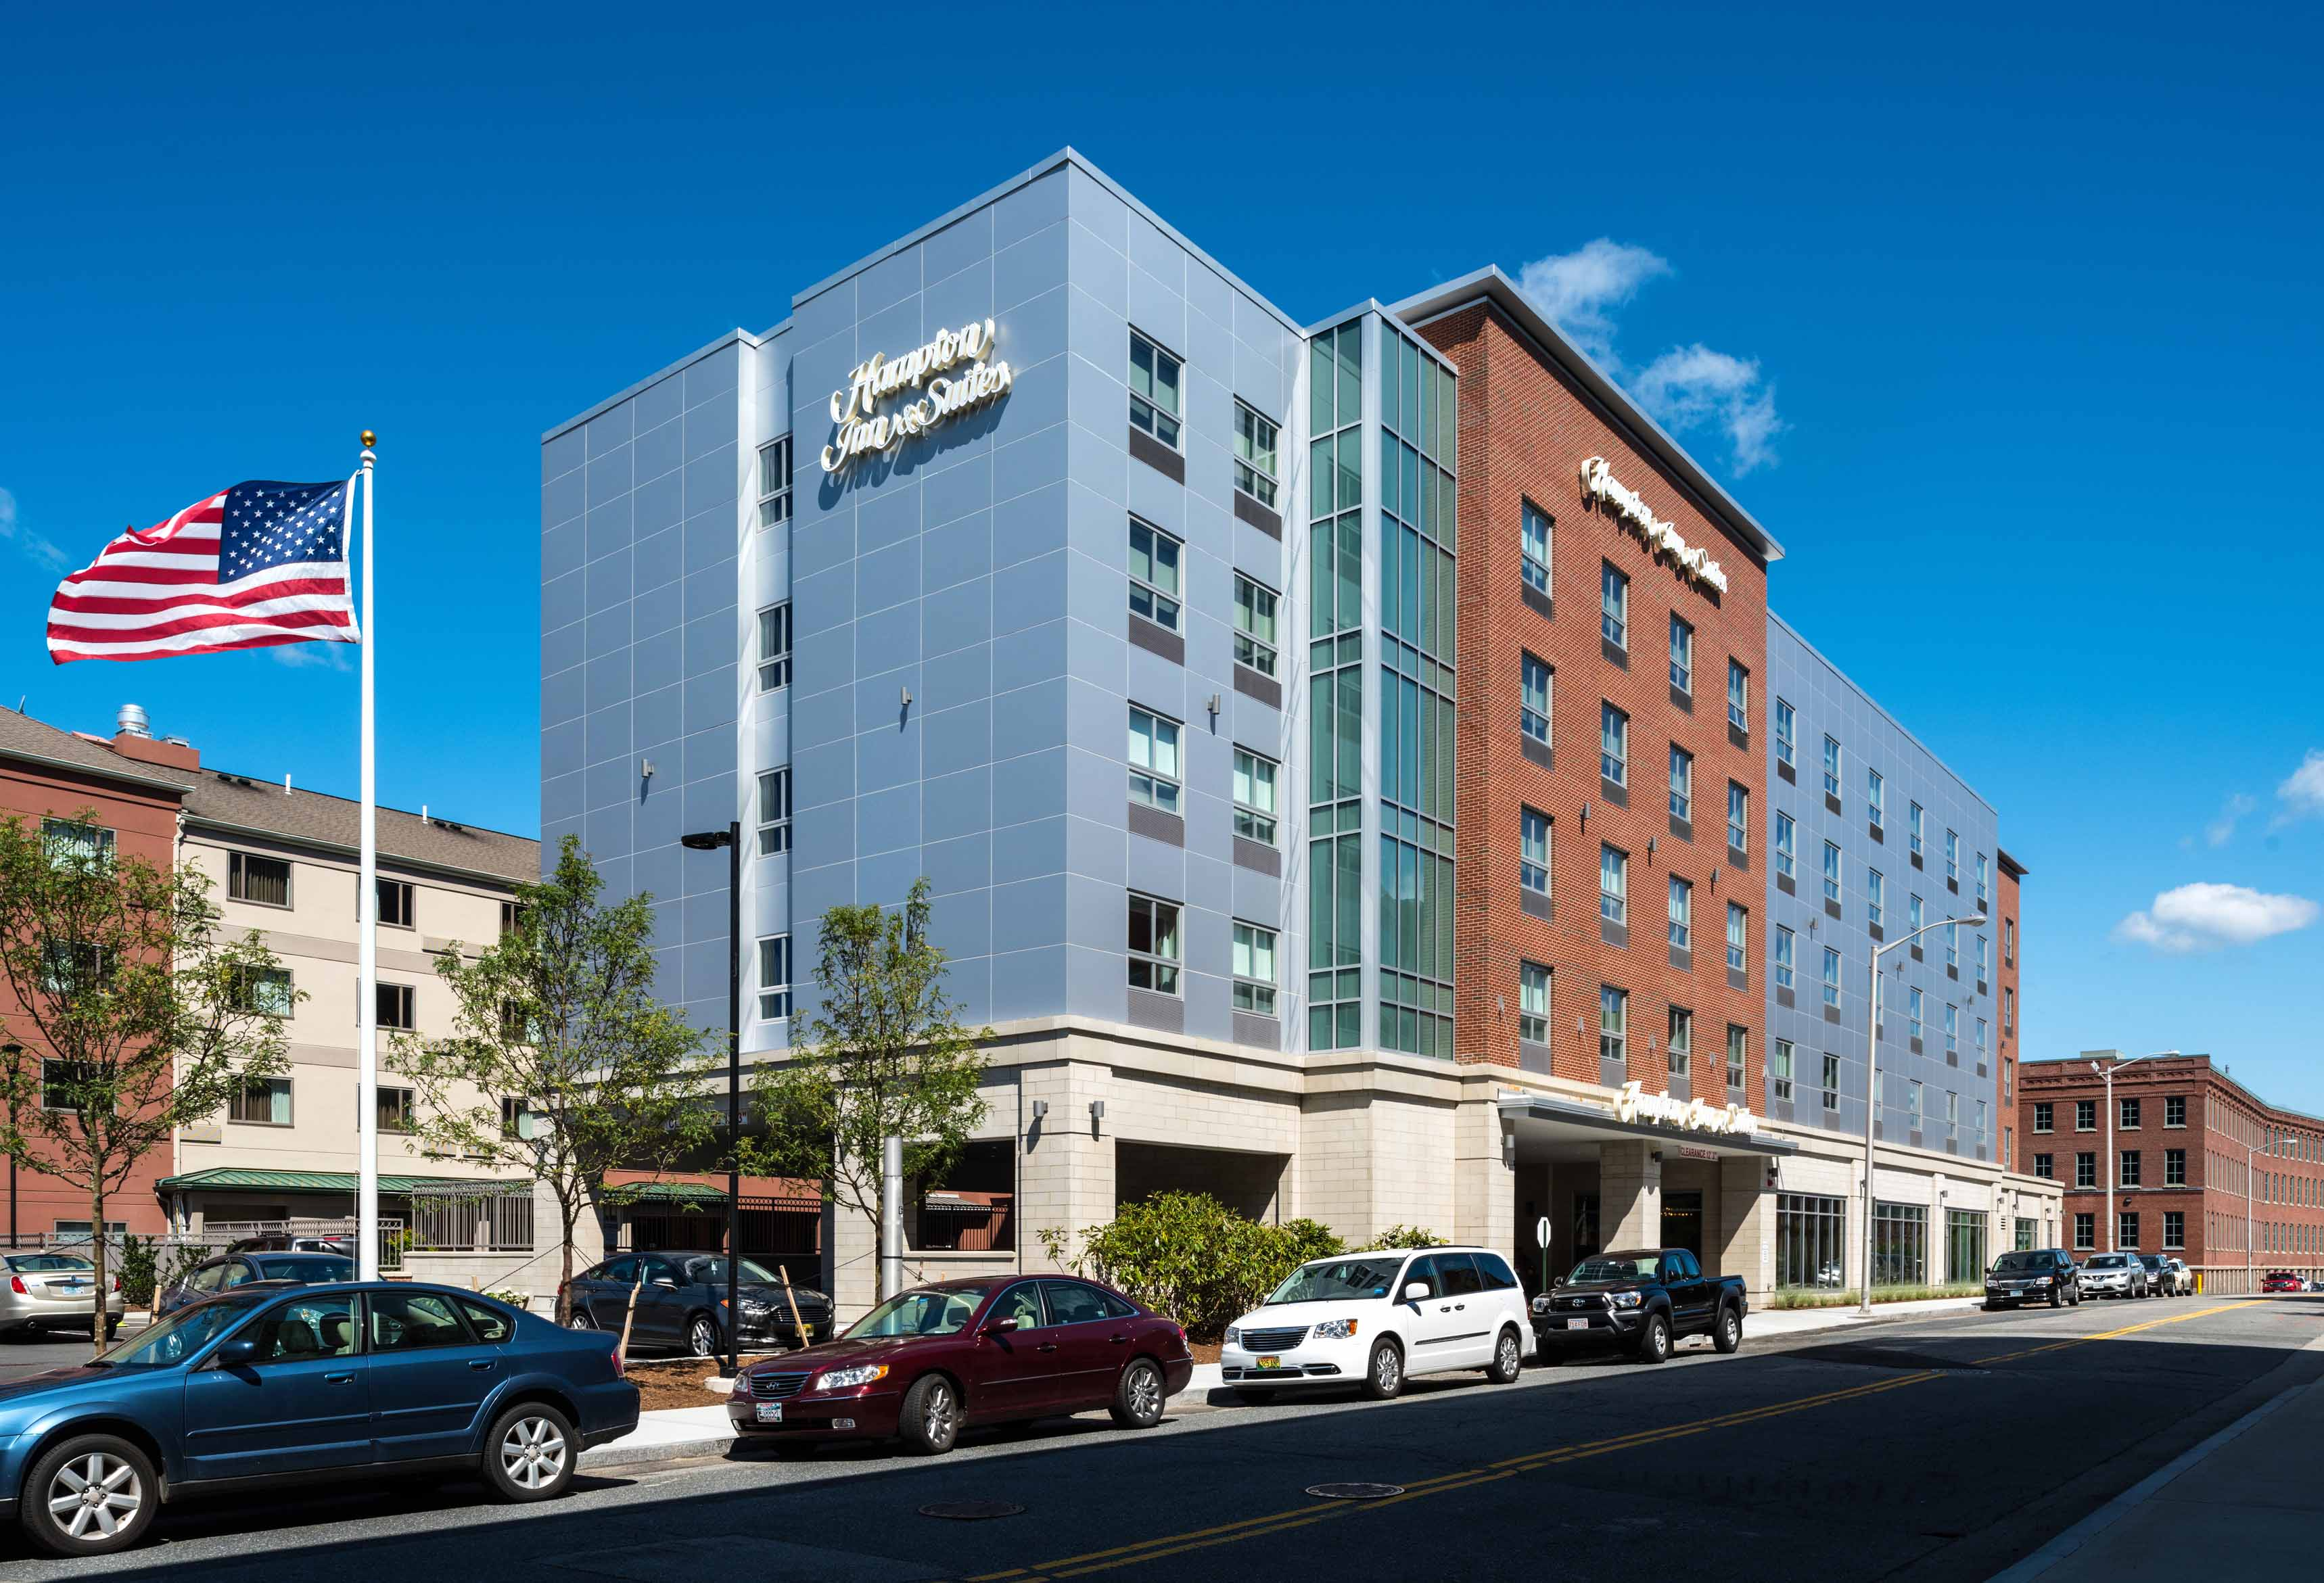 Worcester Hotel Deals Hotel Offers In Worcester, MA. Stay Discover Central  Massachusetts Discover Central